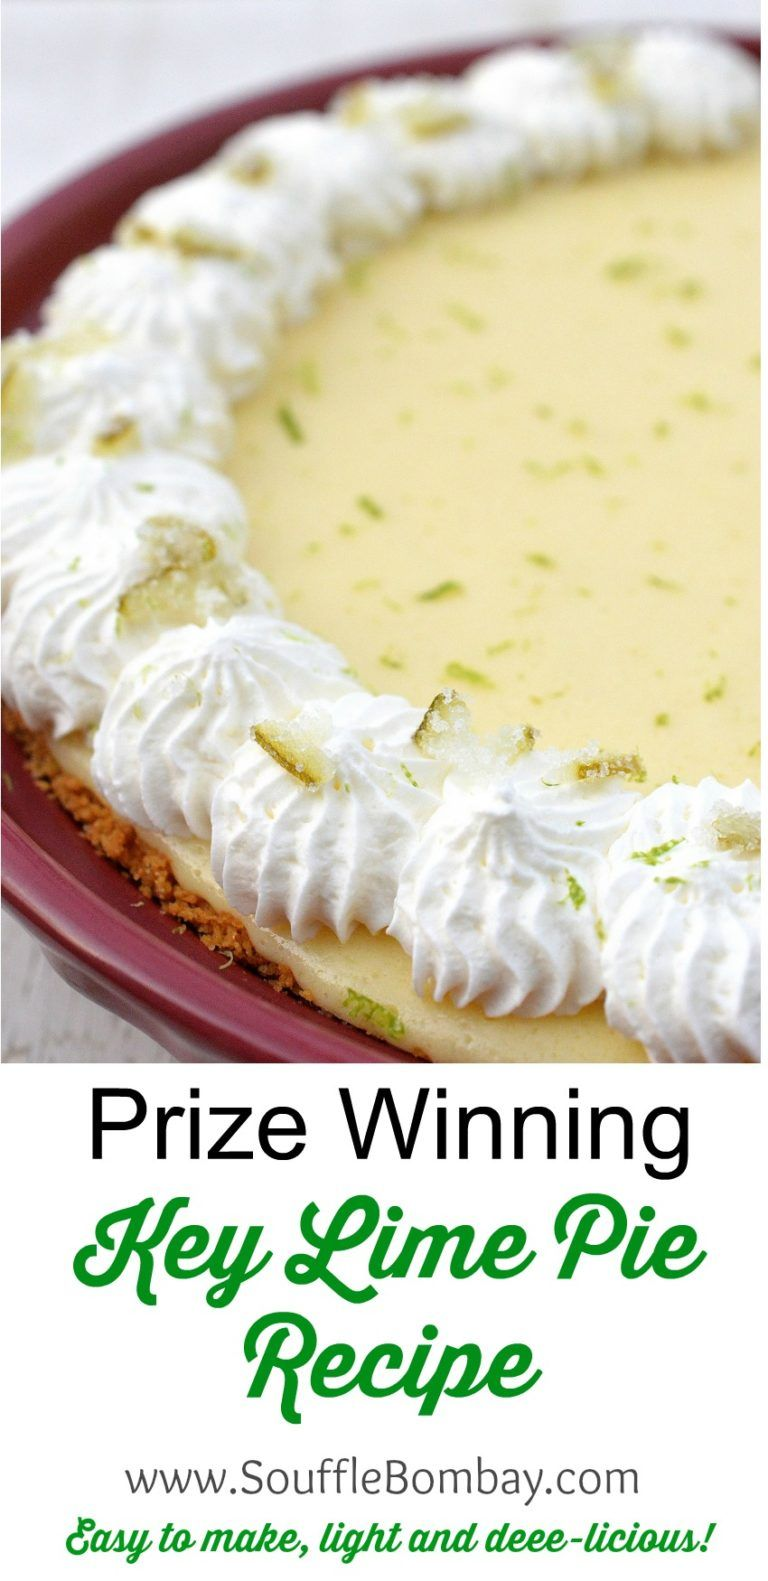 Prize Winning Key Lime Pie Recipe With Sour Cream And Condensed Milk It S Easy And Delicious Prize Winning Key Lime Pie Recipe Desserts Lime Recipes